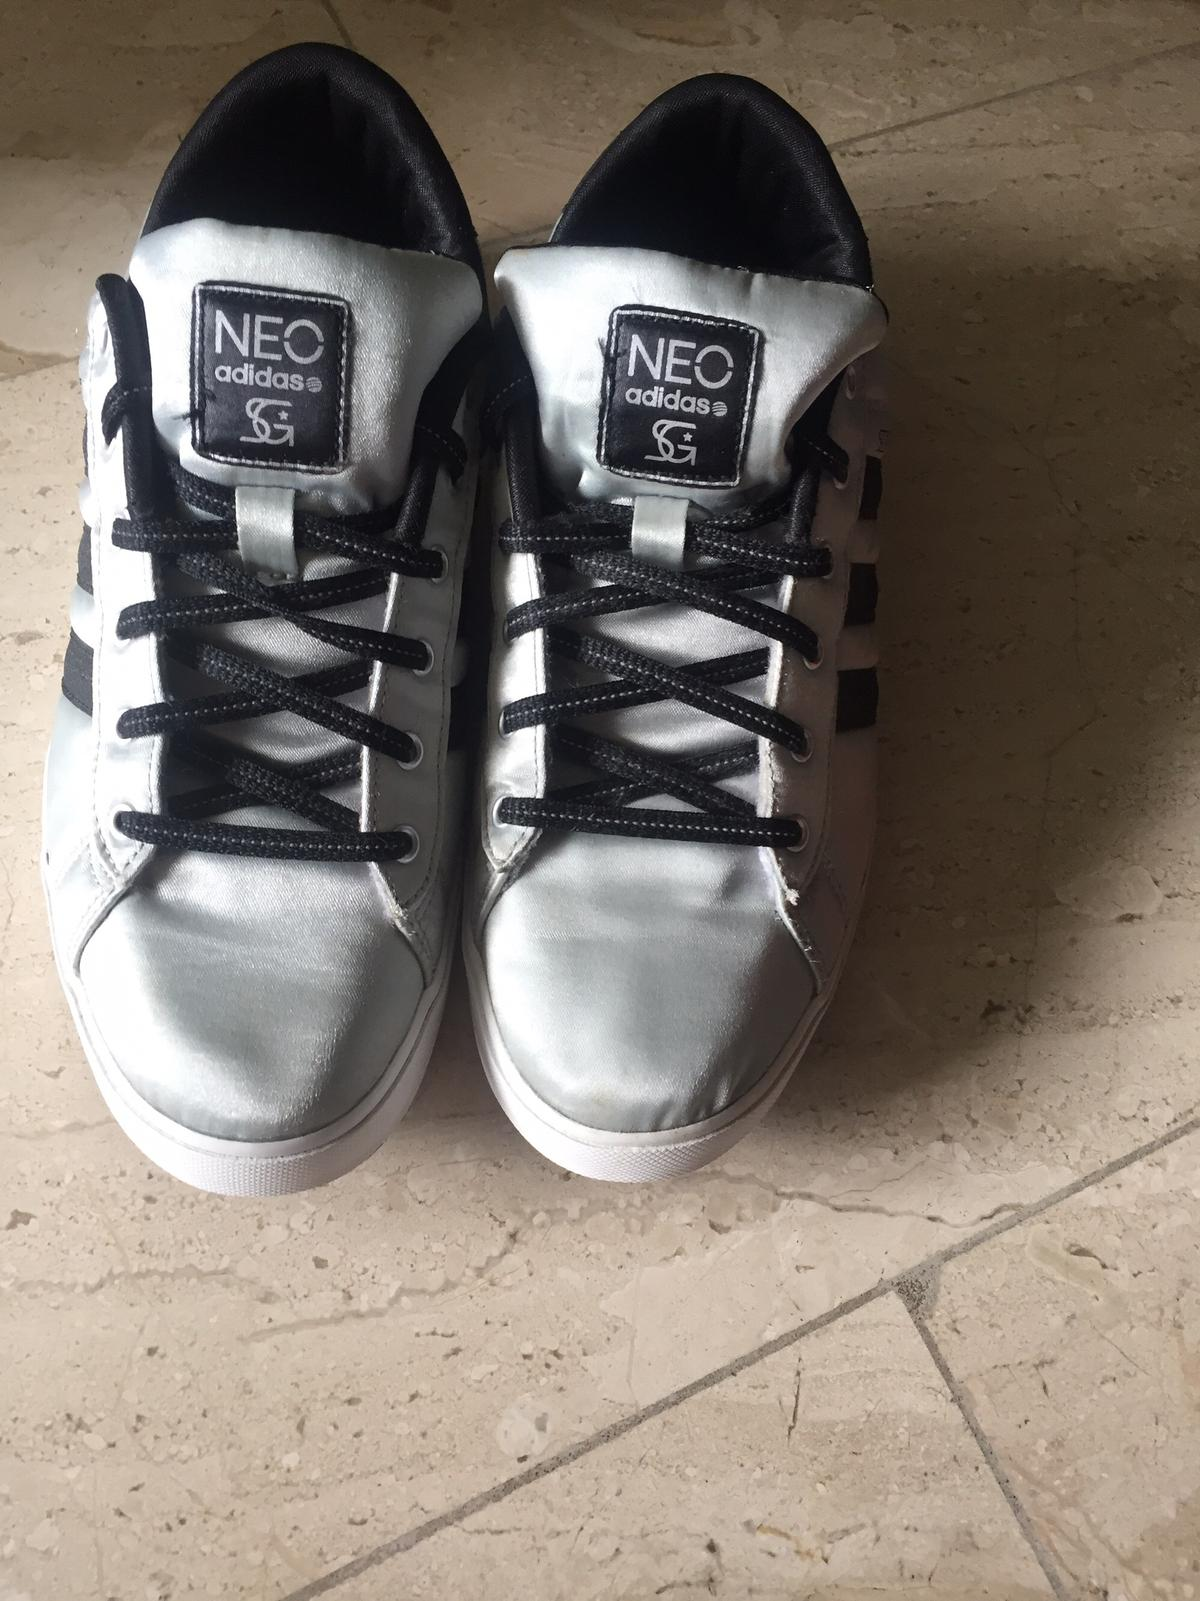 Gomez Adidas 36277 in NeoSelena Collection38 g6yfvYb7